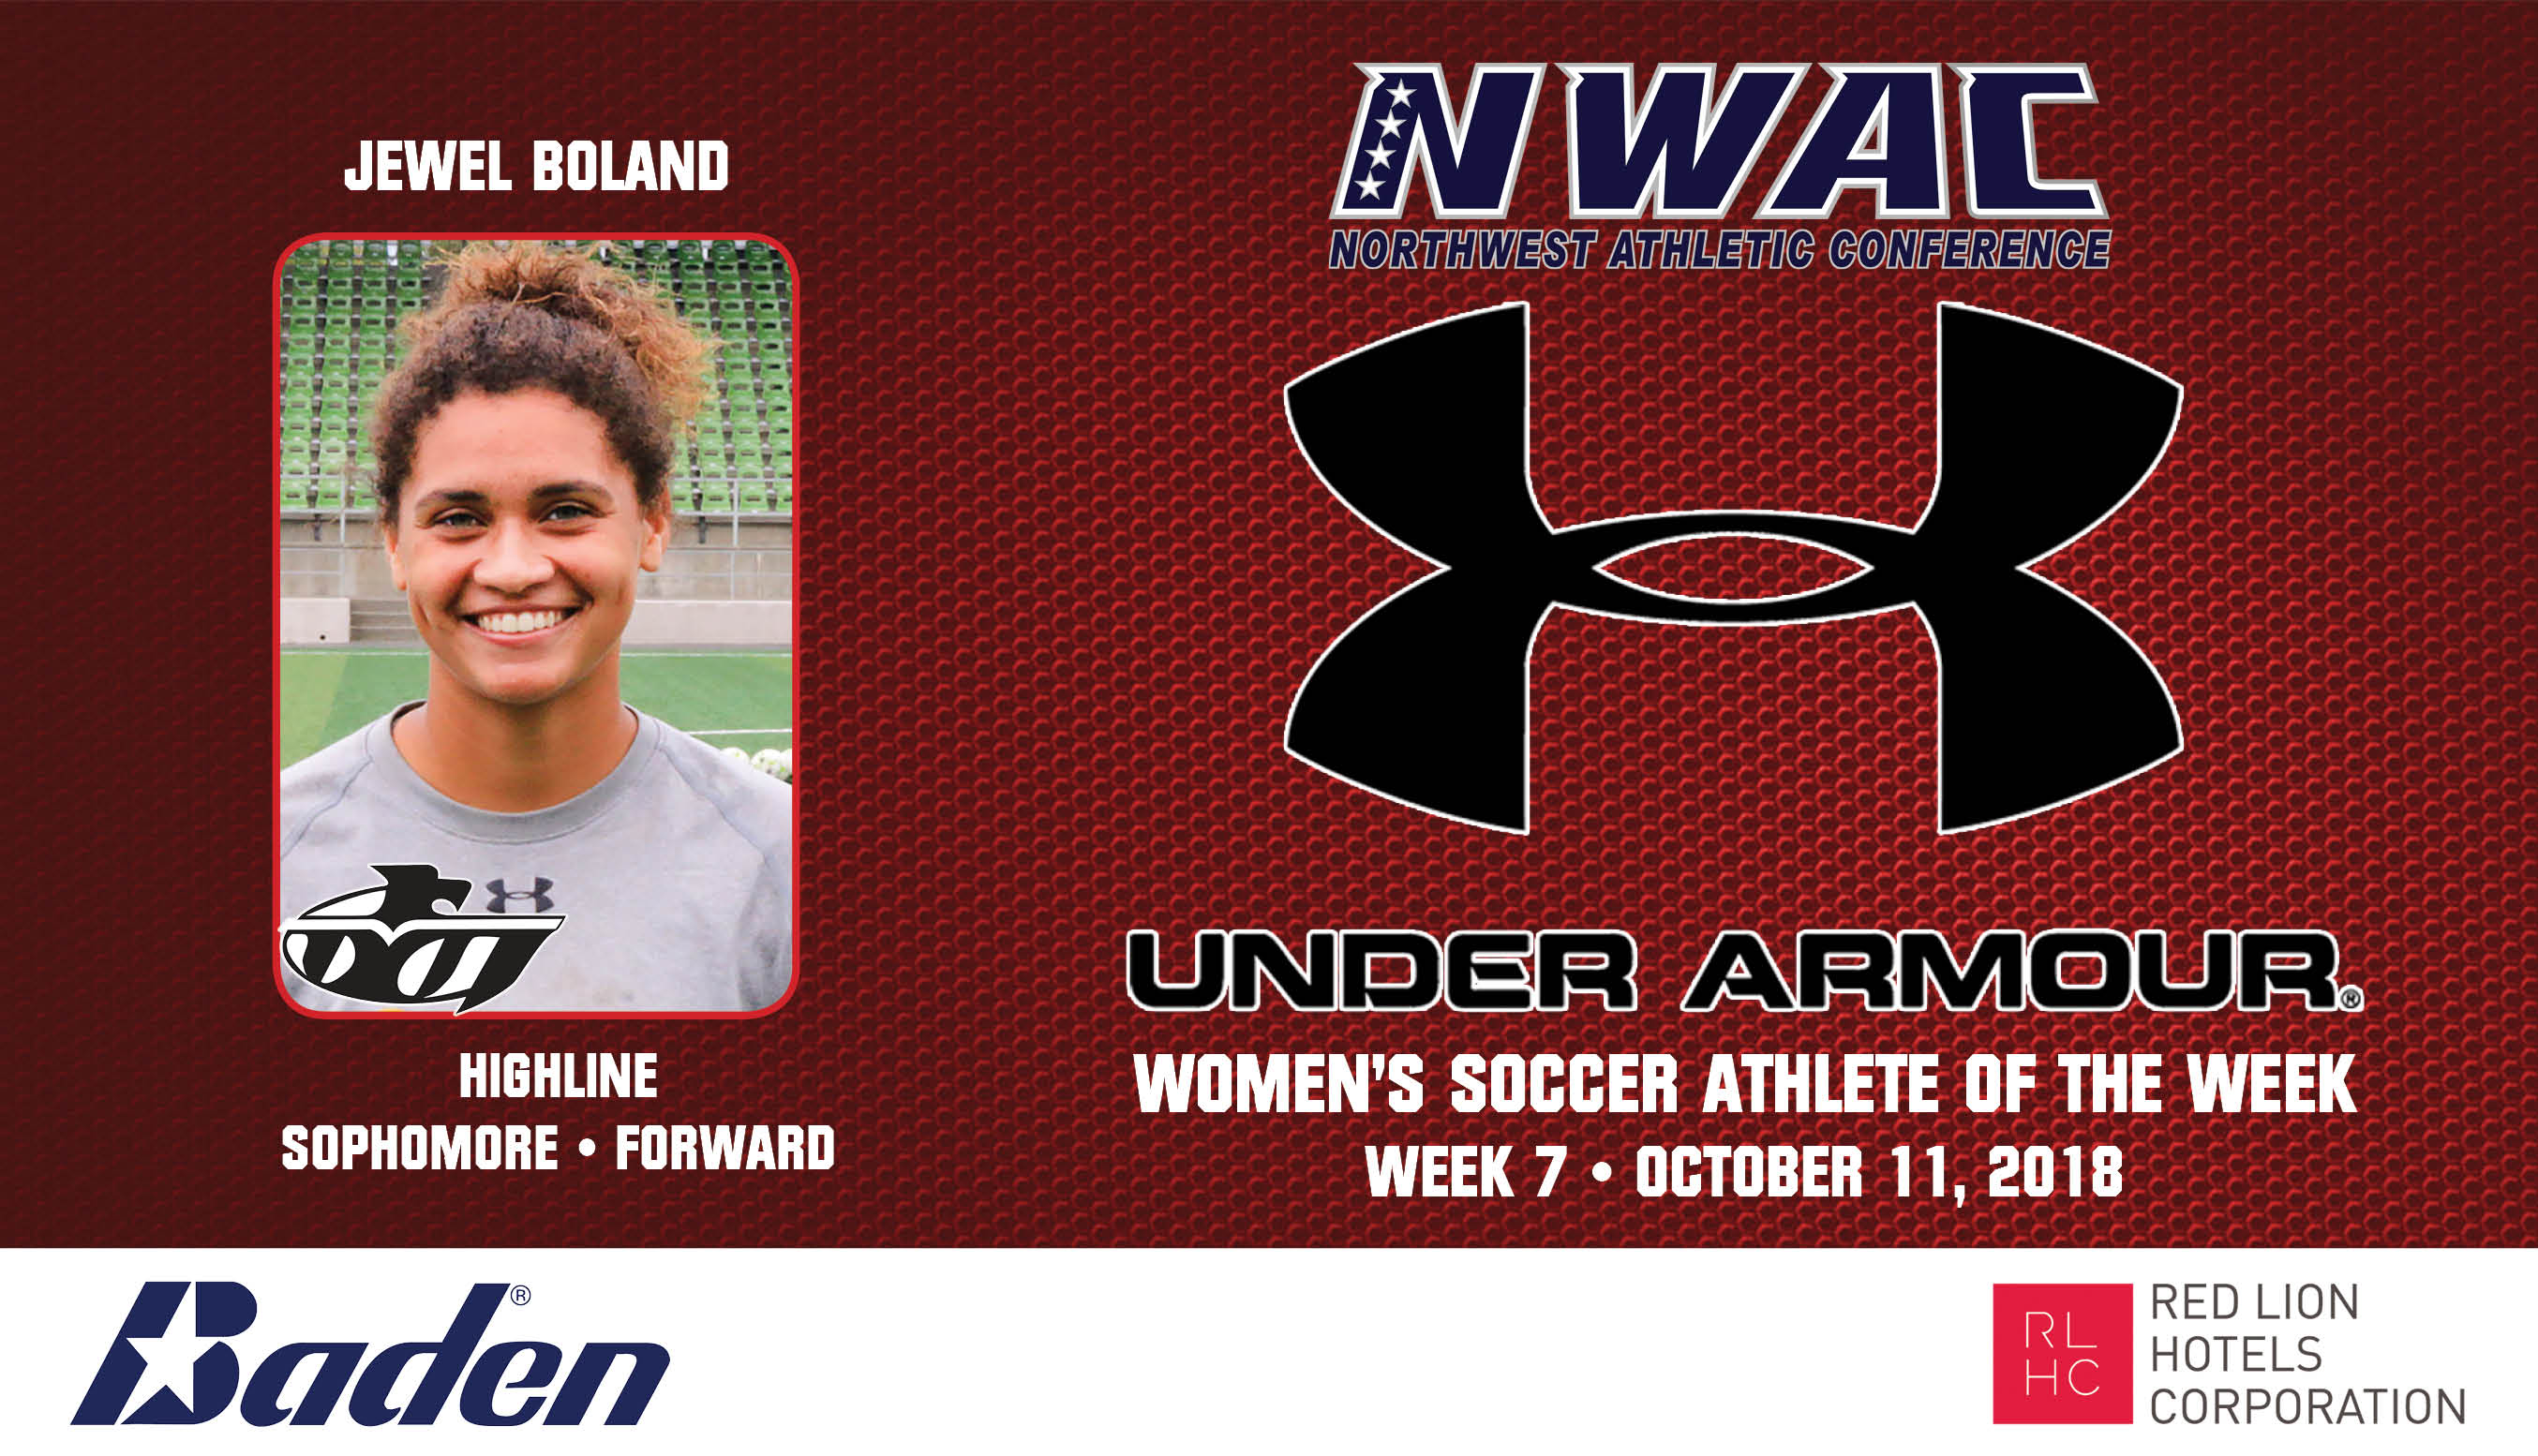 Jewel Boland Armour Player of the Week graphic